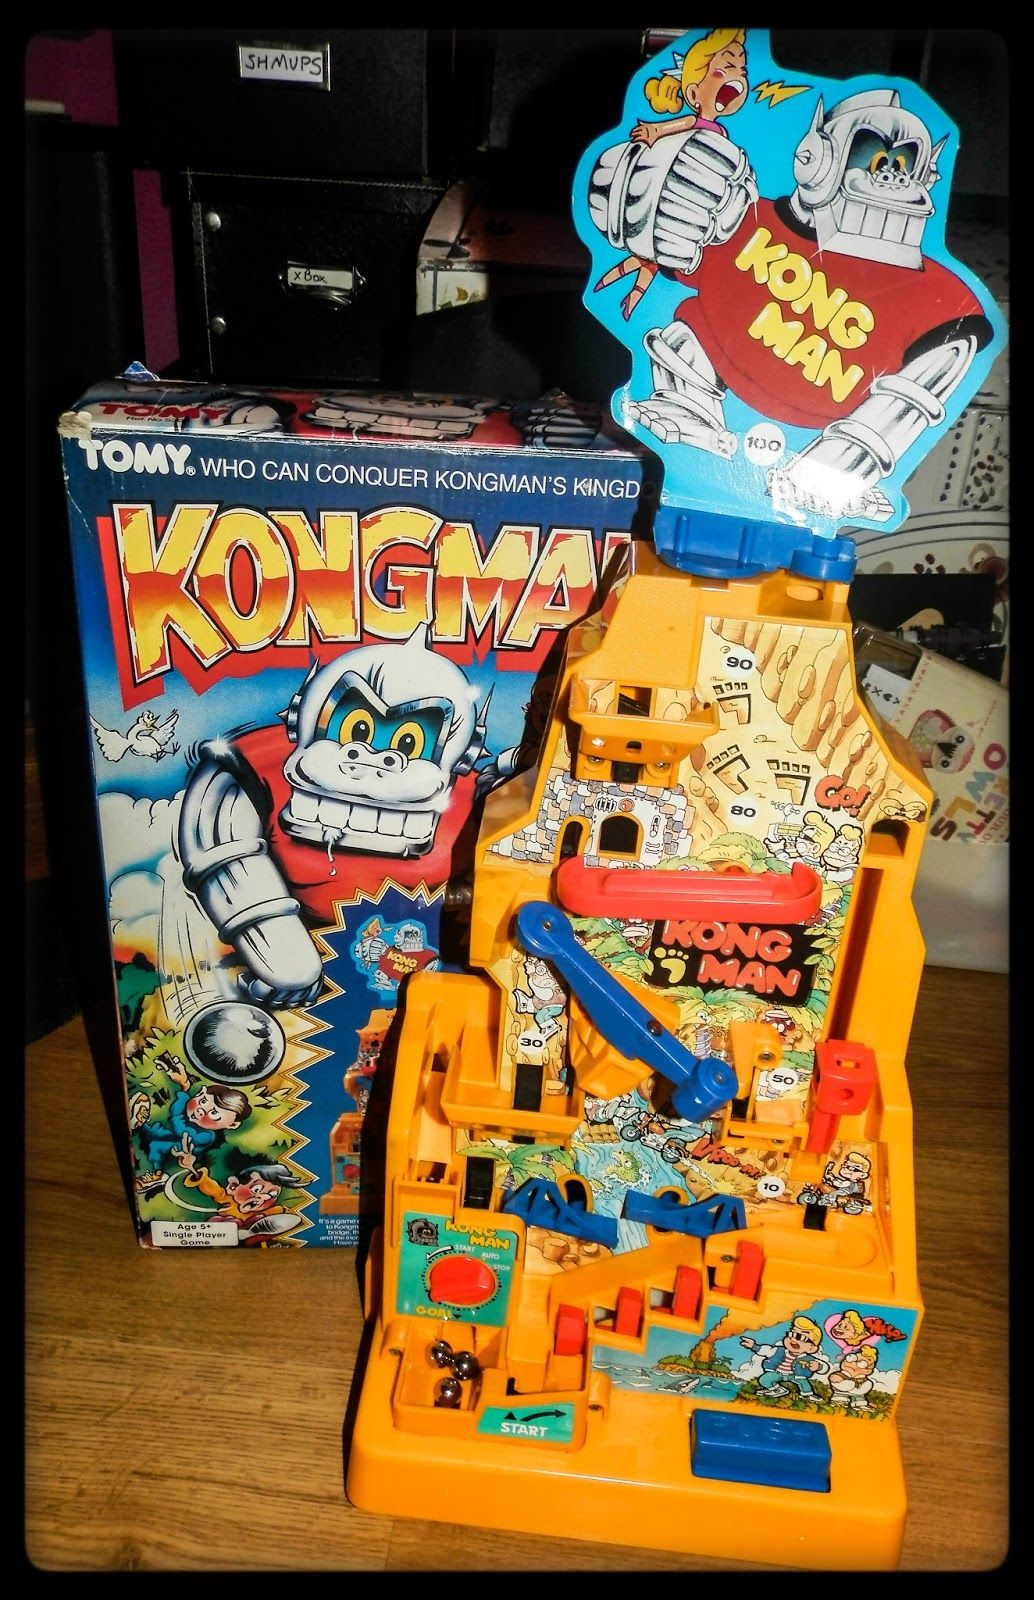 A Kong Man toy with its original 1980s packaging